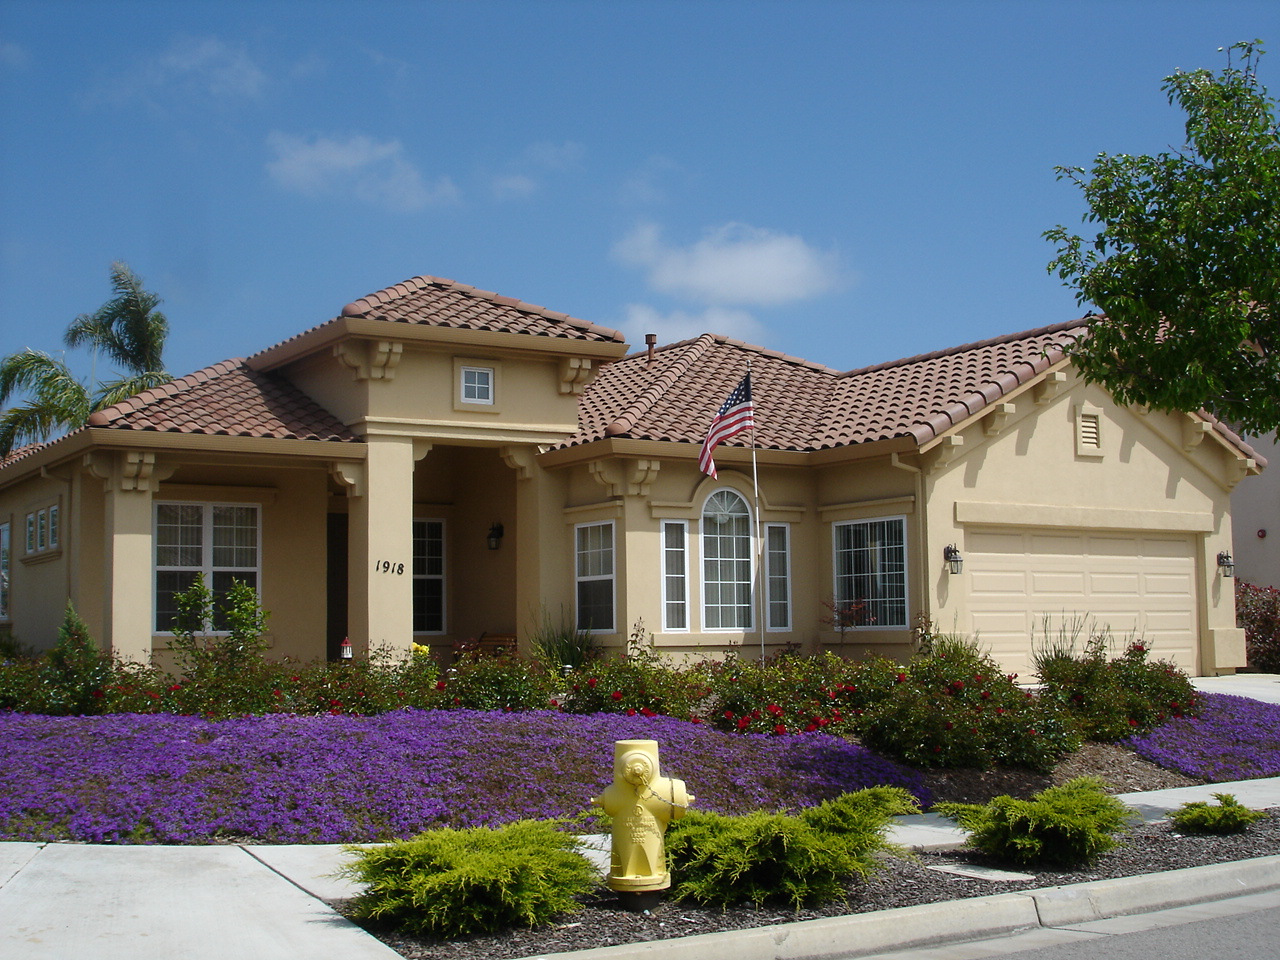 File ranch style home in salinas california jpg for A forma di ranch house